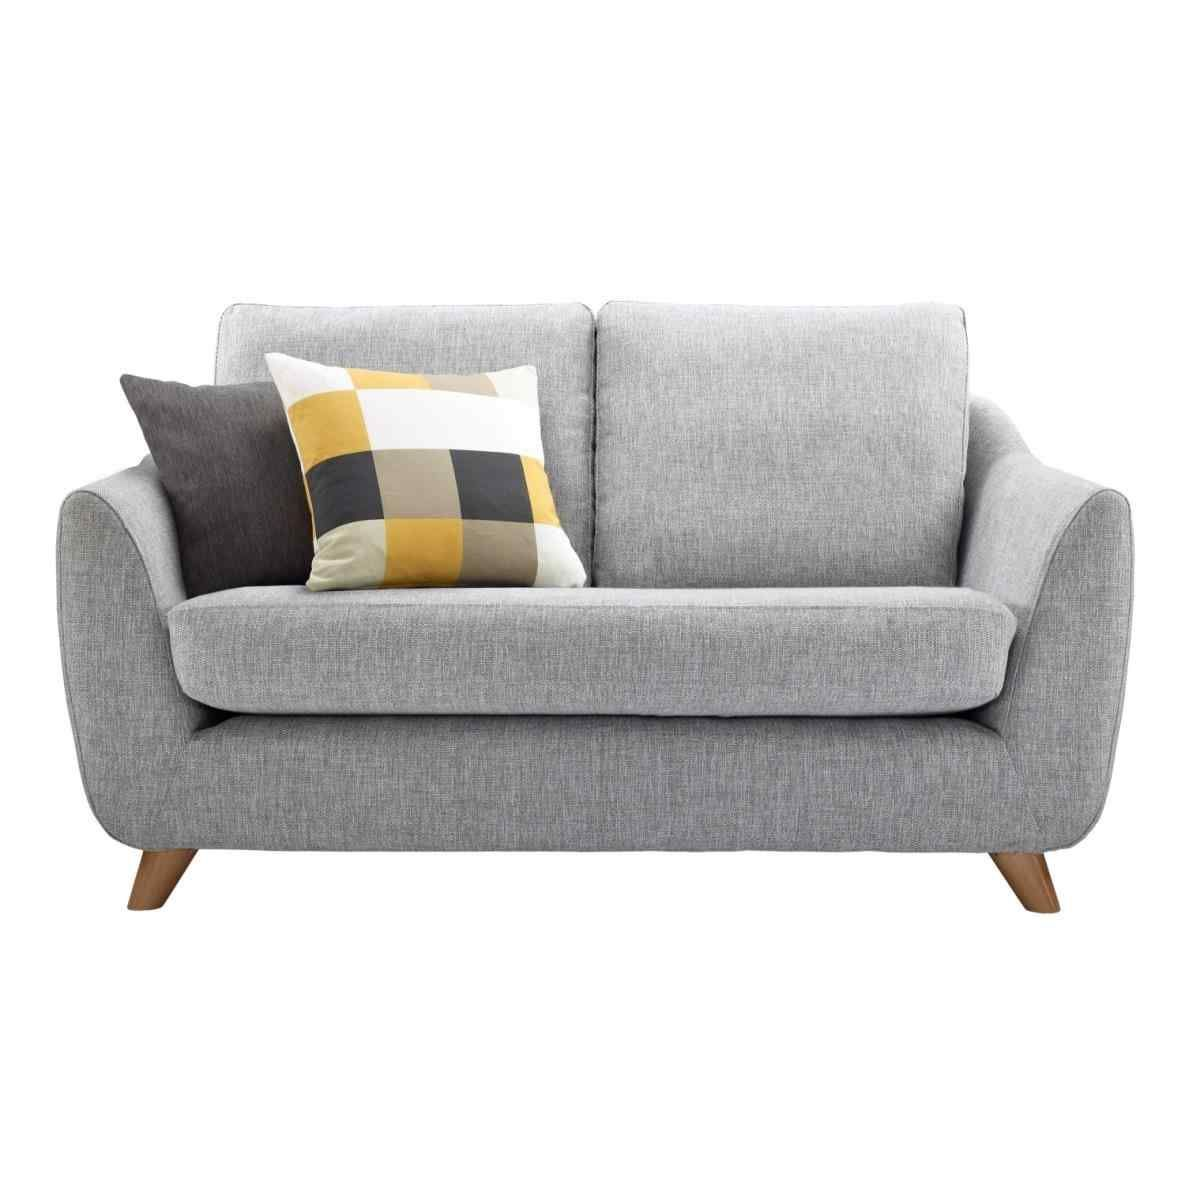 U Inexpensive Sectional Sofas For Small Es Couches Com Tosh Furniture Modern Zebrano Sofa Gallery Image